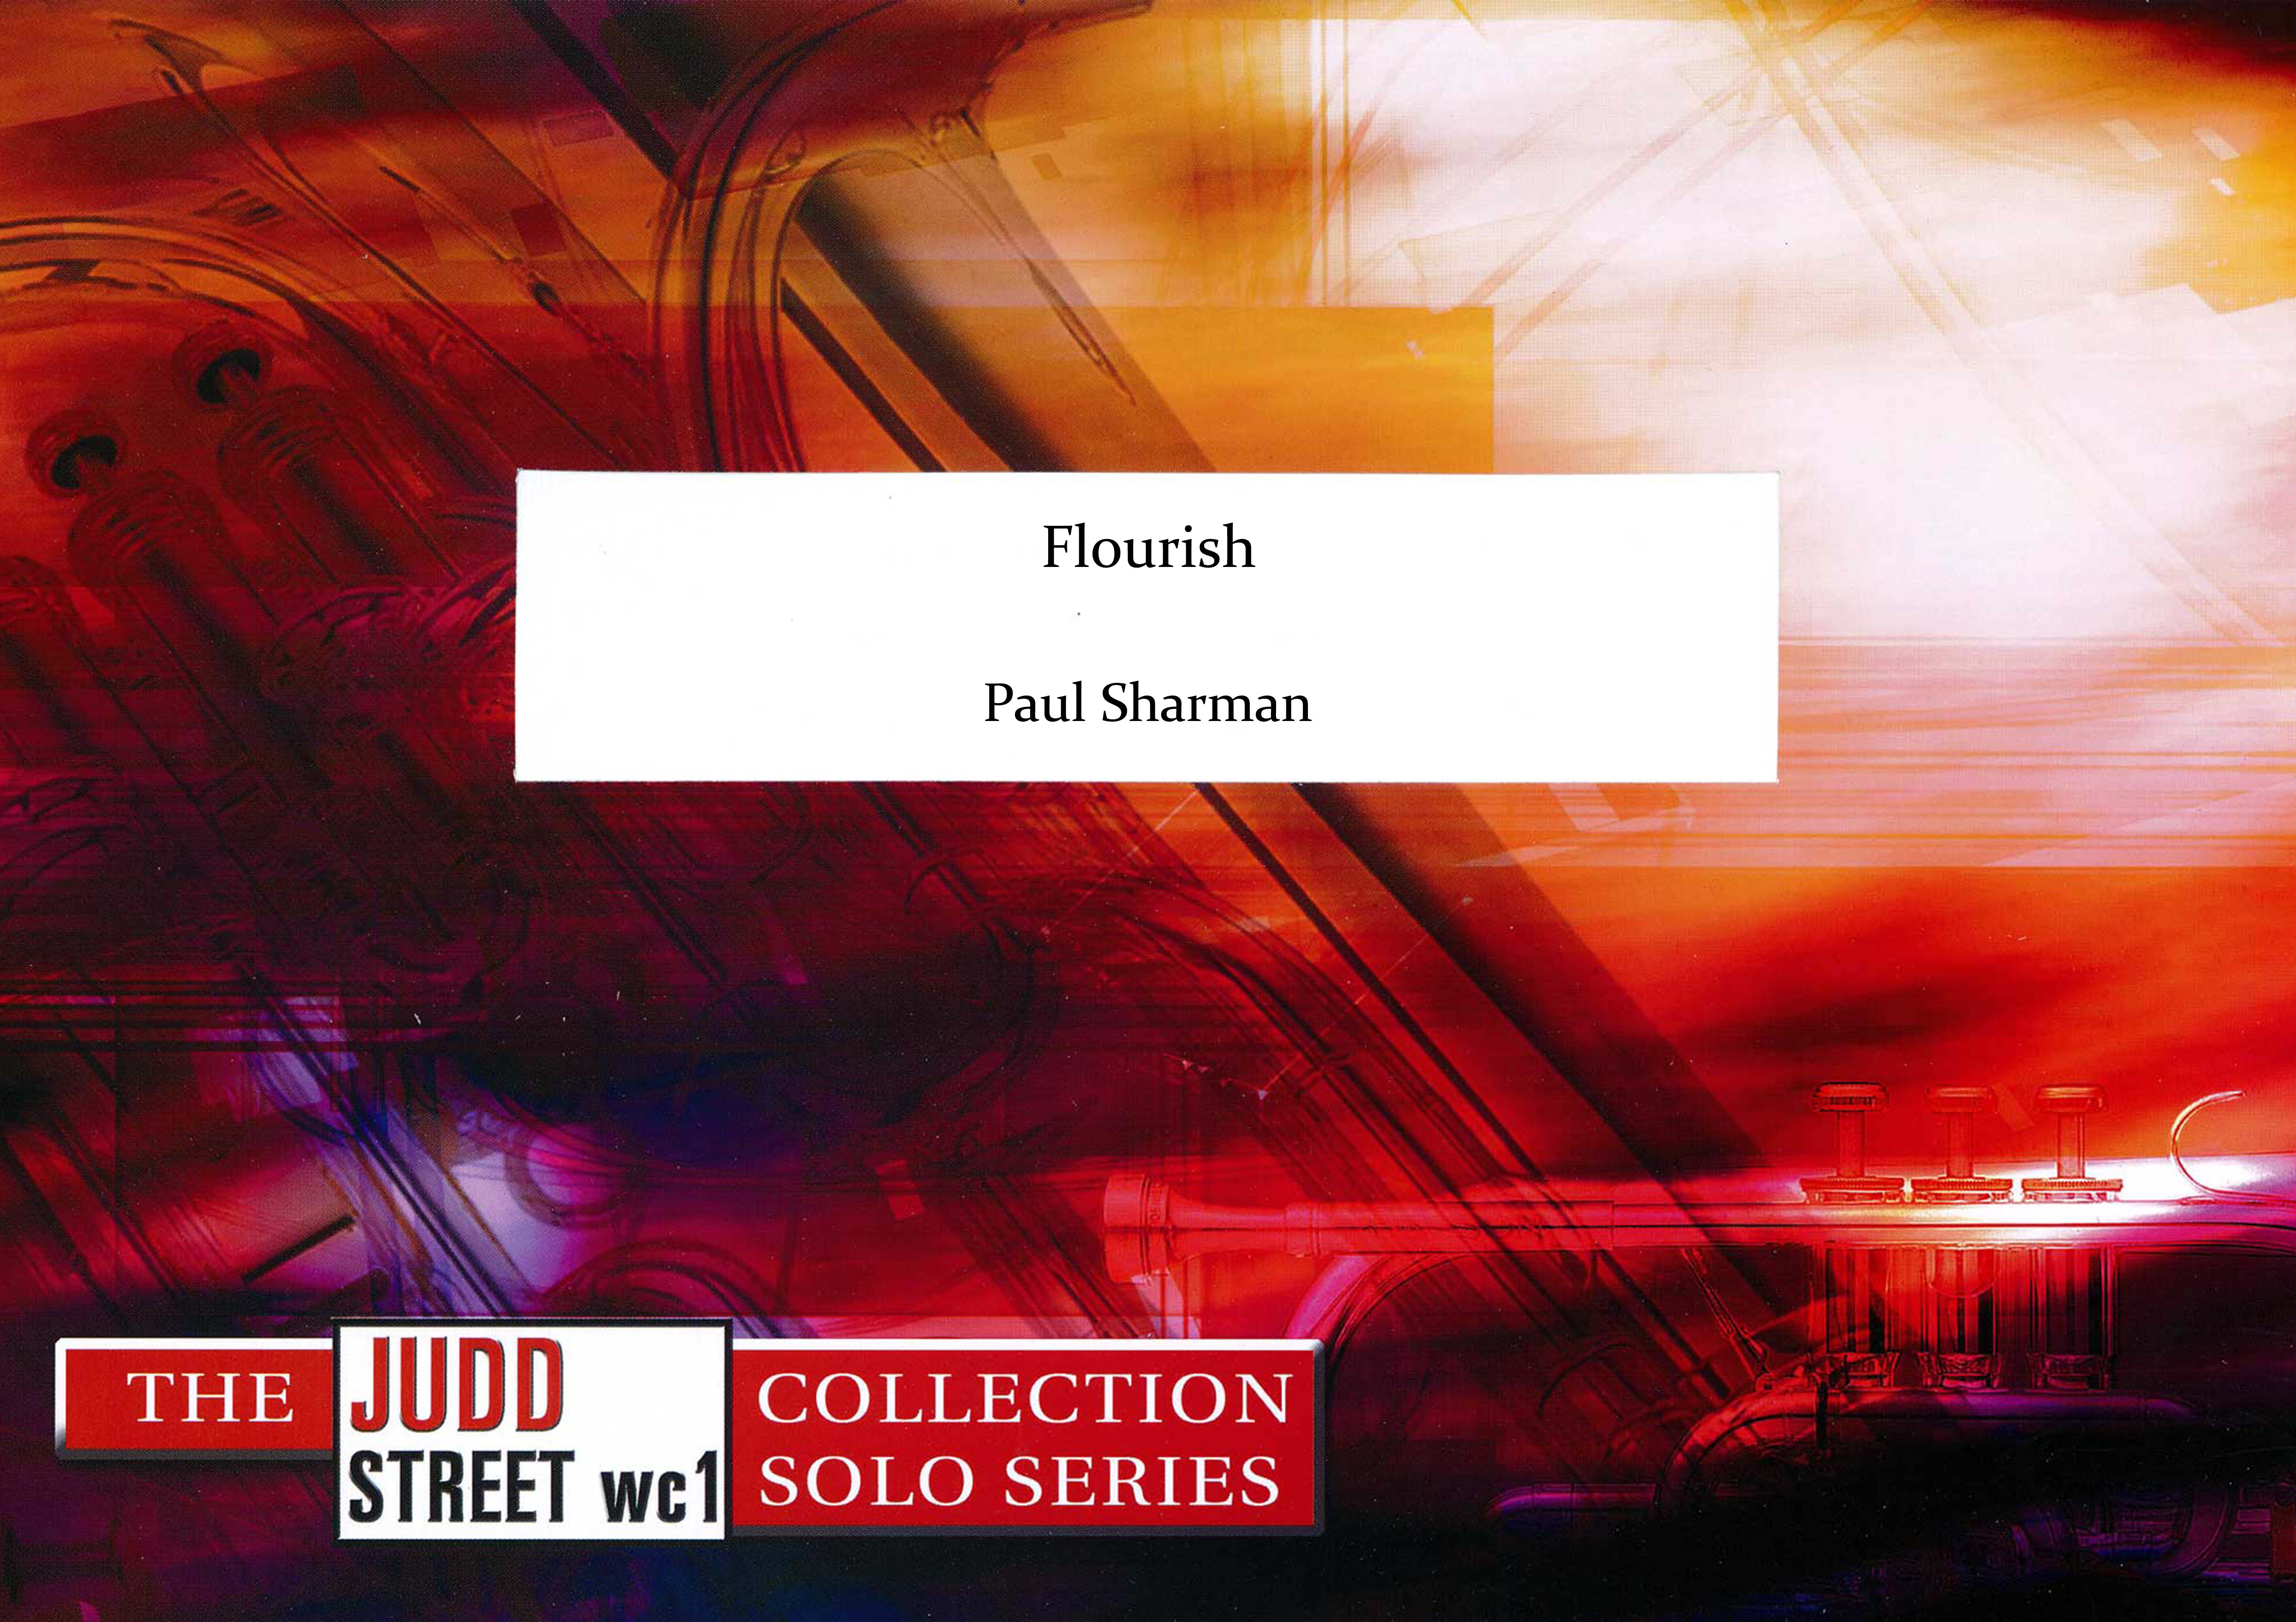 Flourish (Trumpet Solo with Brass Band - Score and Parts)